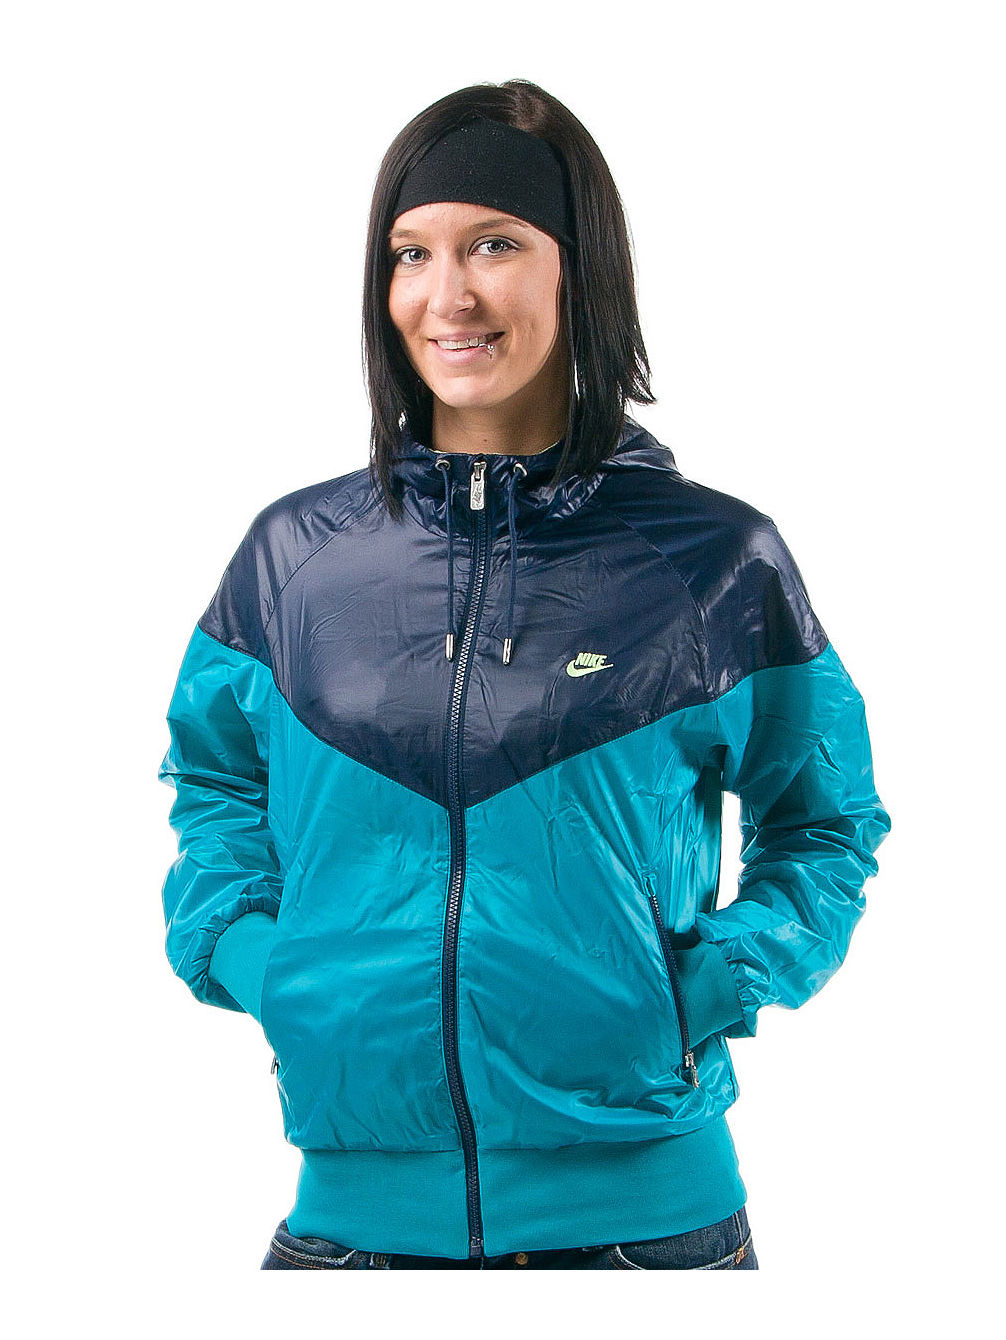 db1c44bd3df1 Buy Nike Windrunner Jacket Women online at blue-tomato.com